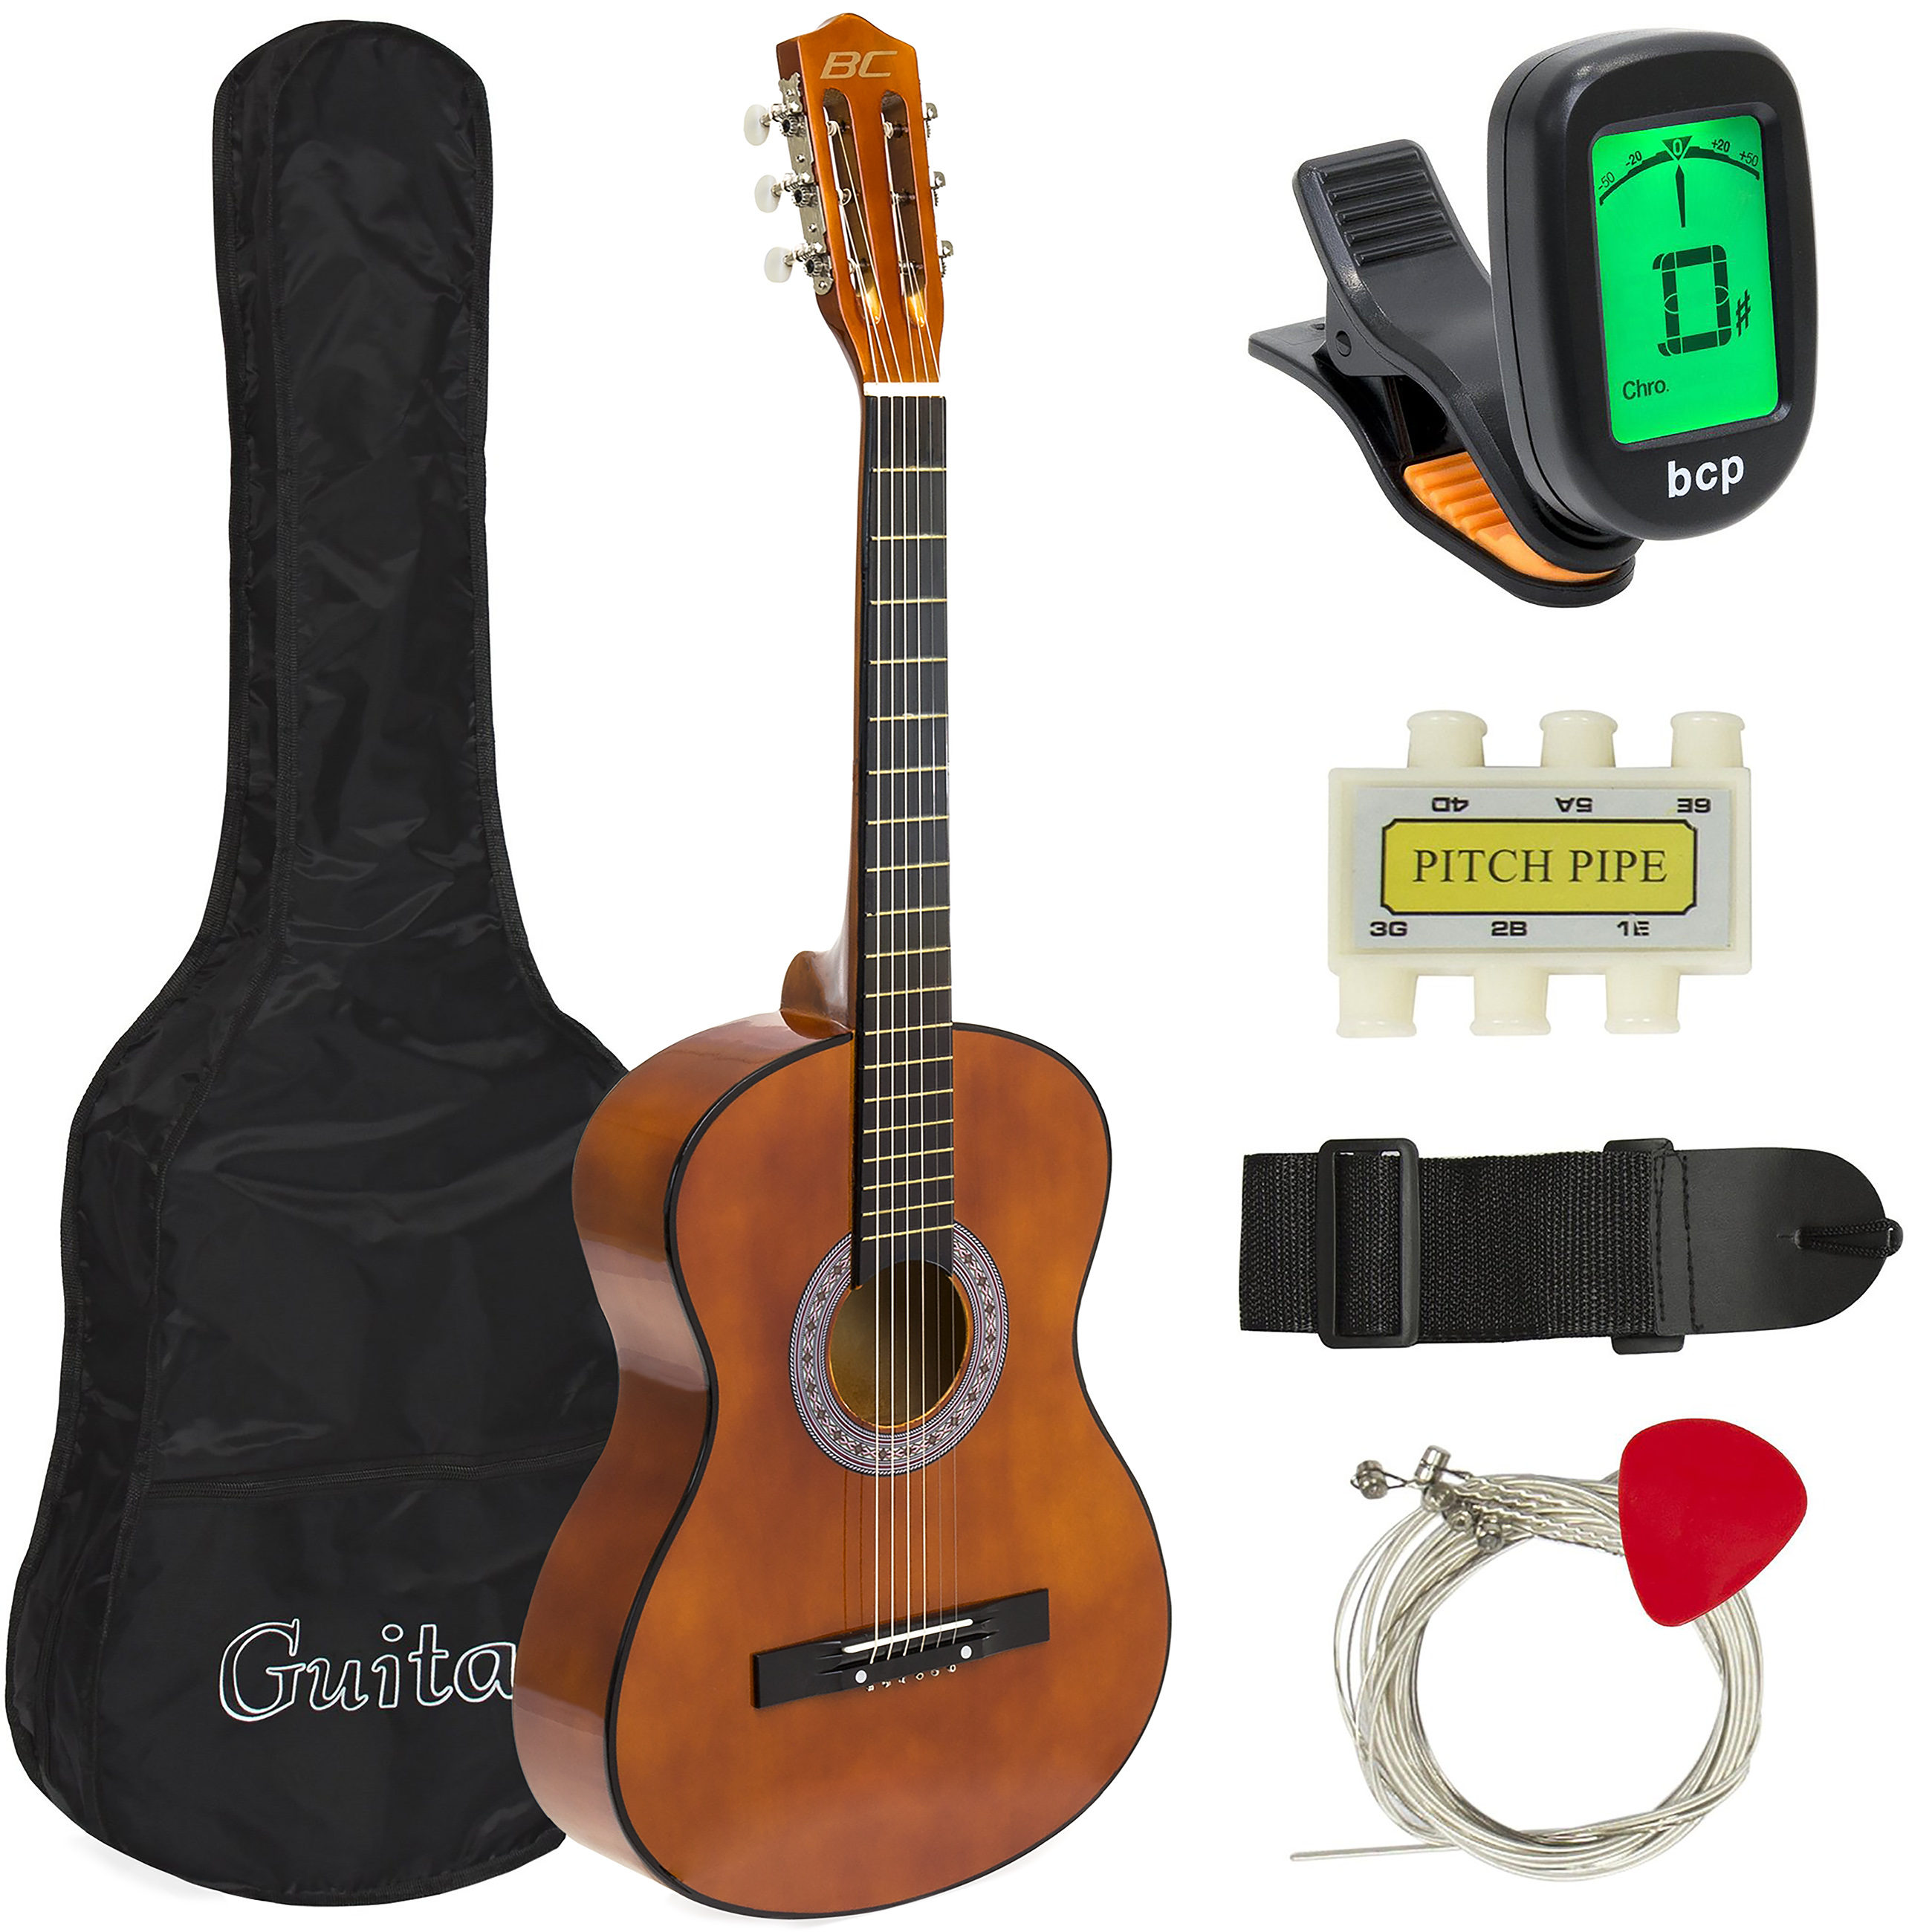 Best Choice Products 38in Beginner Acoustic Guitar Bundle Kit w/ Case, Strap, Digital E-Tuner, Pick, Pitch Pipe, Strings - Brown